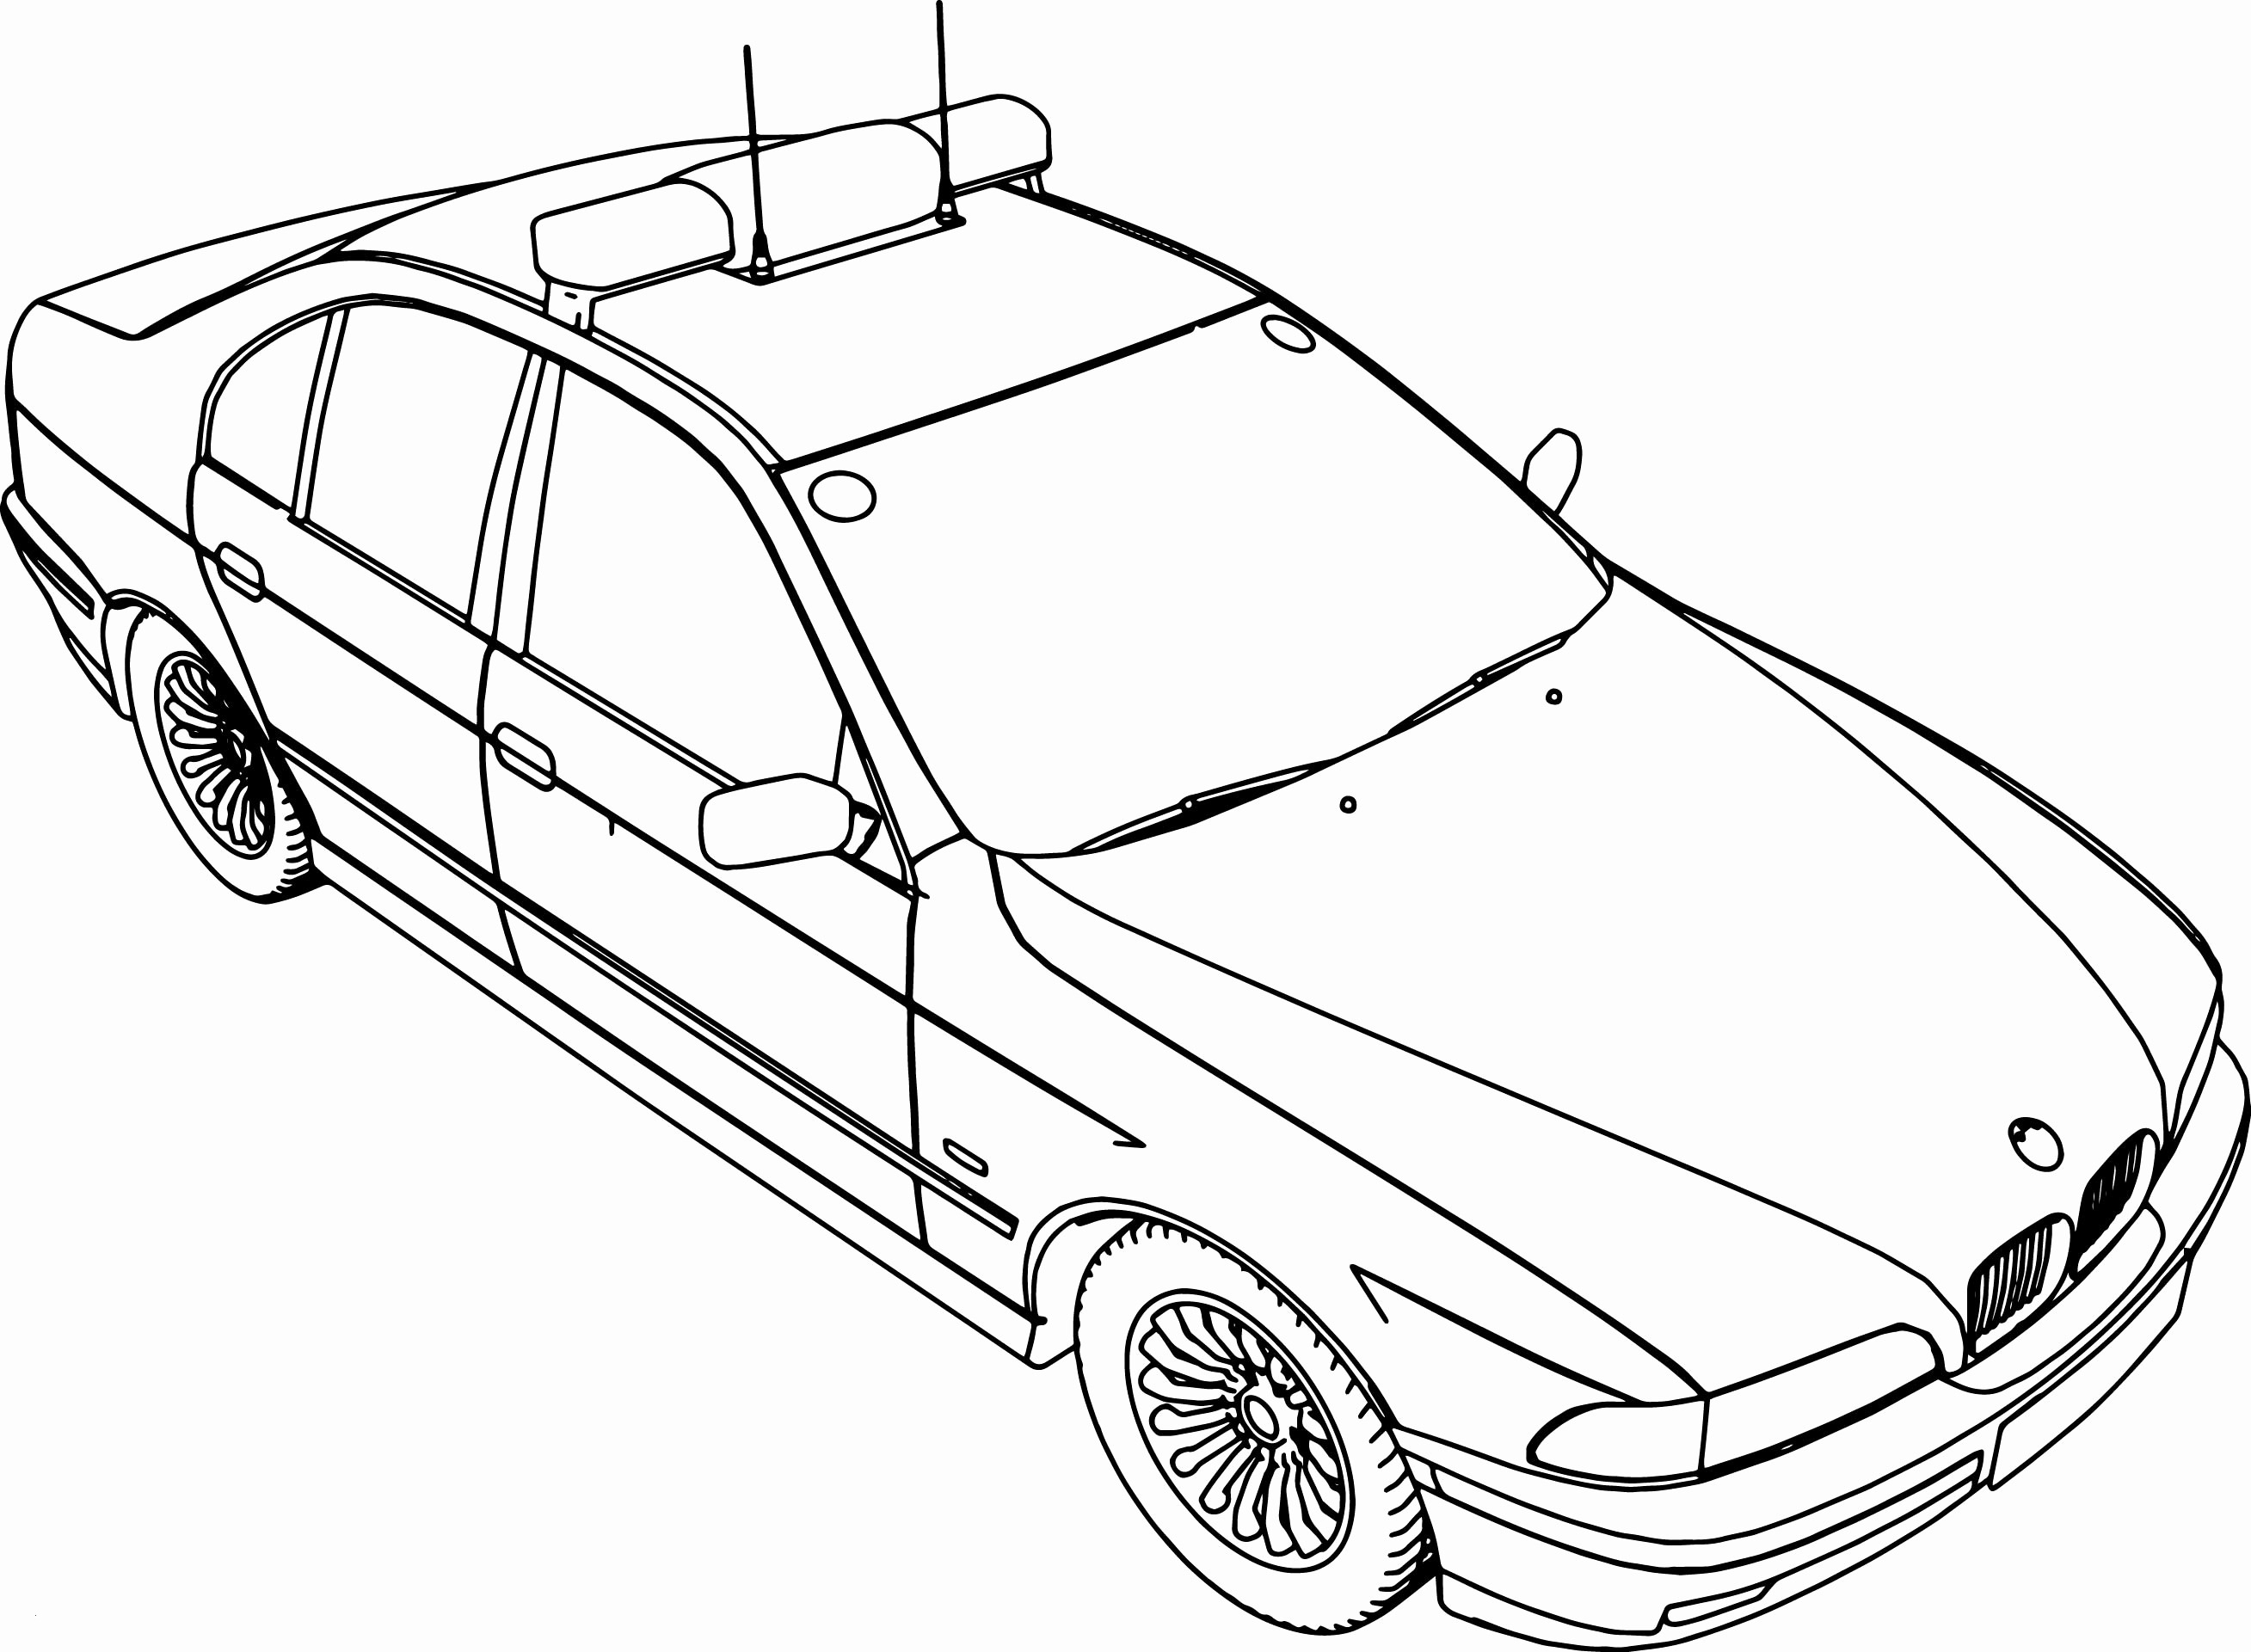 Police Car Coloring Pages  Printable 6c - Free For kids